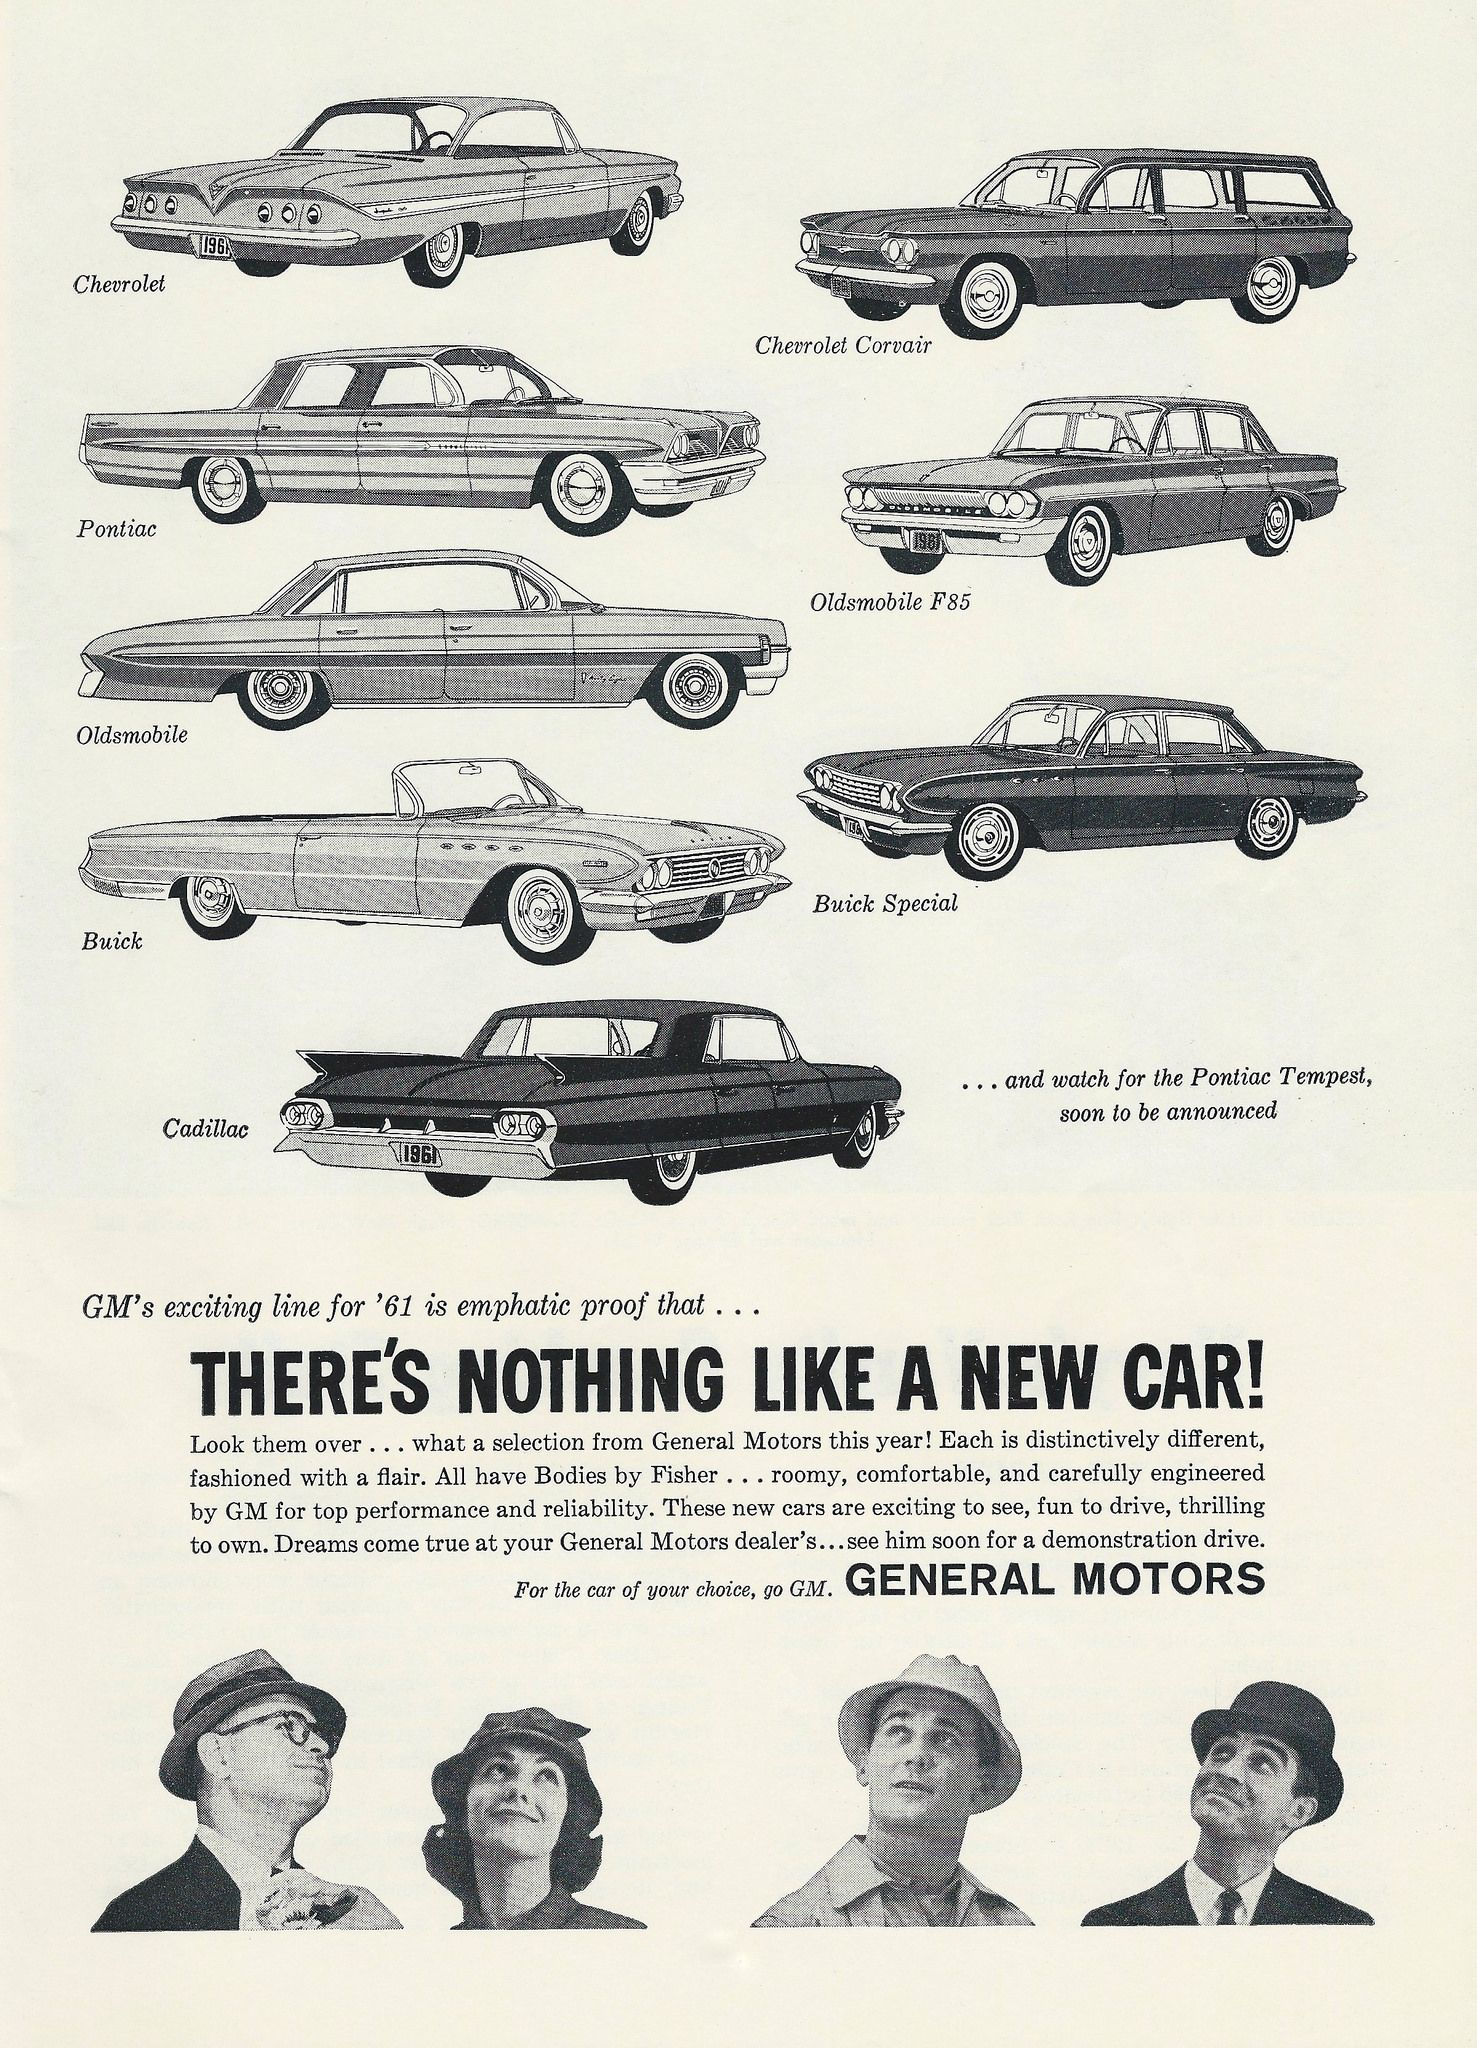 Vintage Automobile Advertising In The Navy Air Force Football Game Official Program Dated October 15 1960 The 1961 General Motors Automobiles Automobile Advertising General Motors Car Advertising